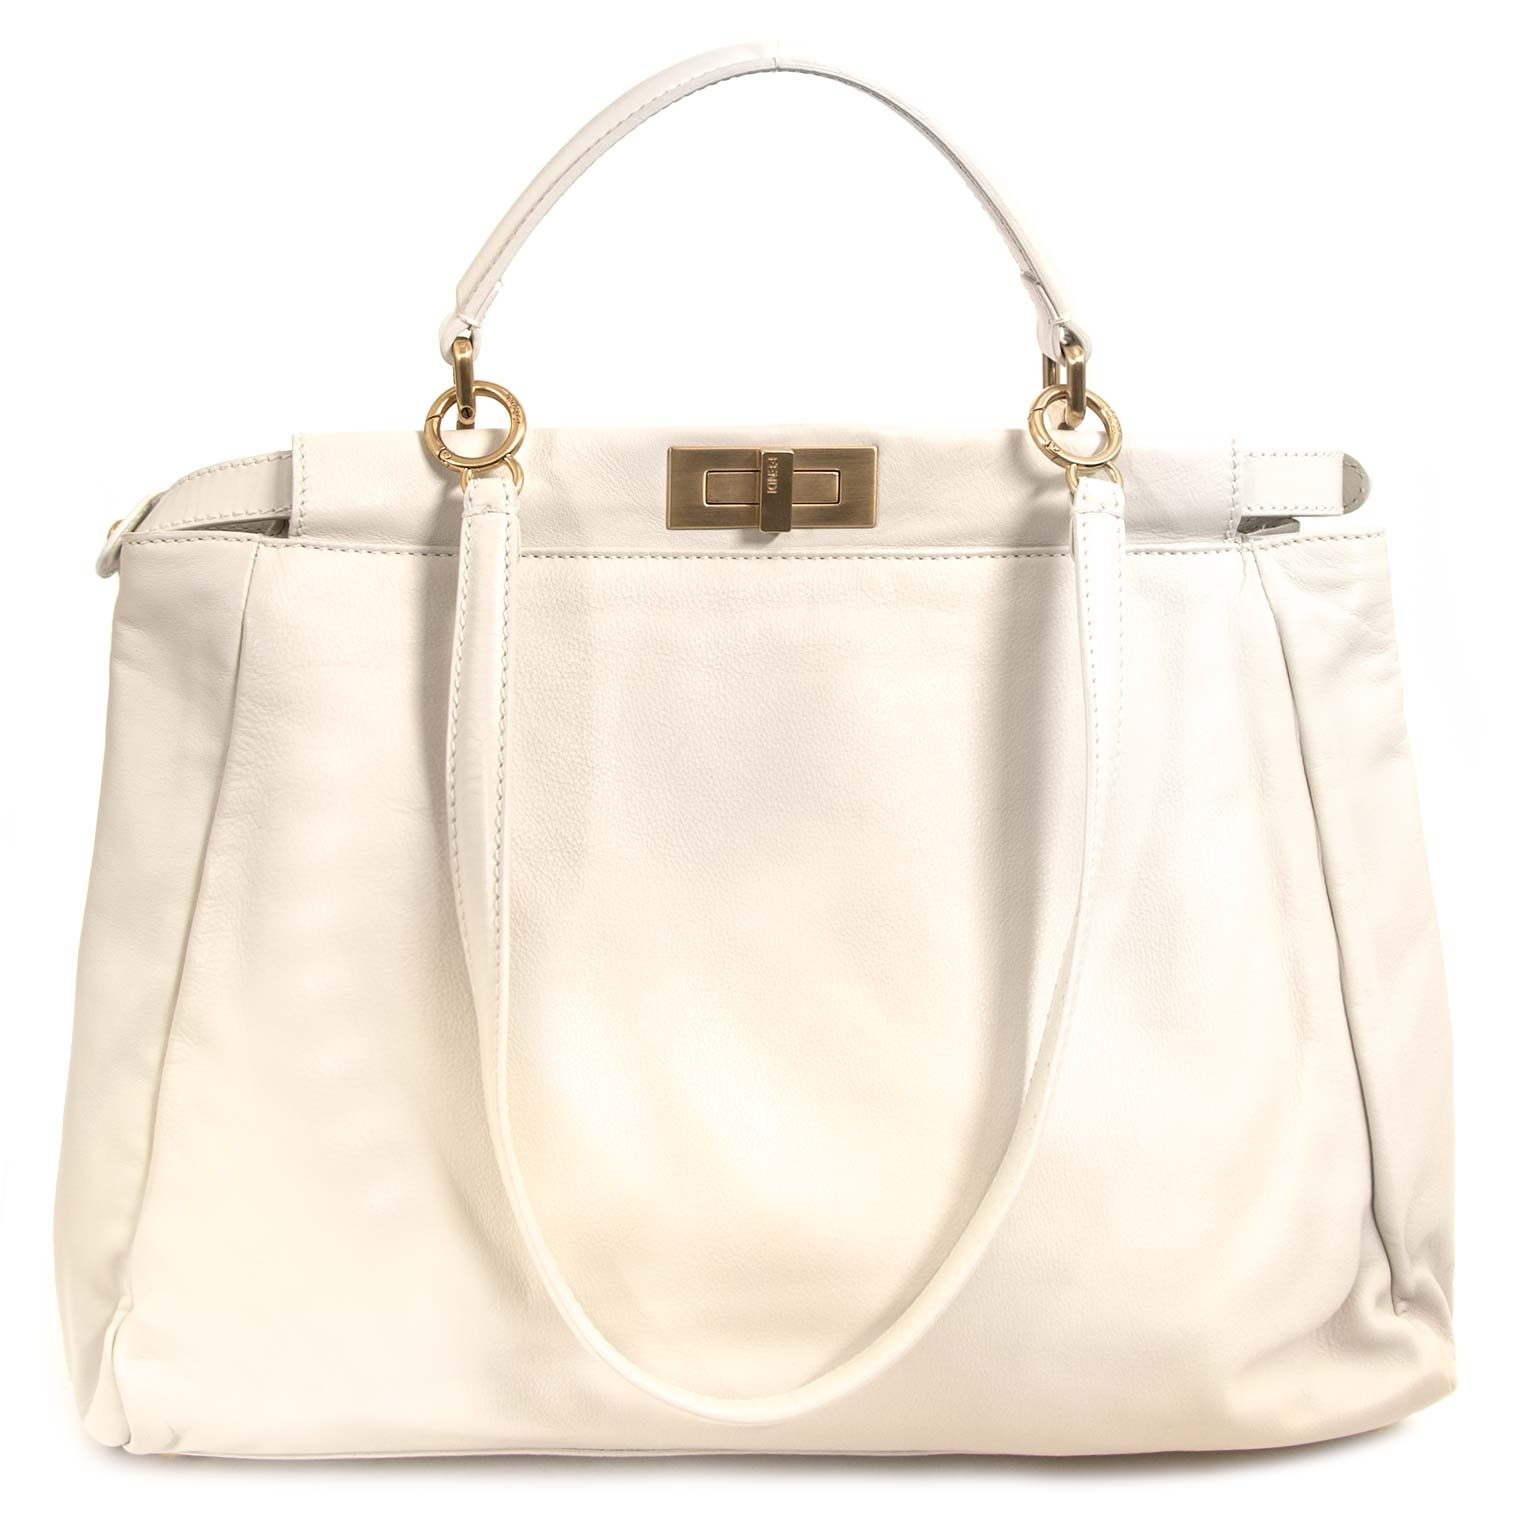 Are you looking for an authentic Fendi Peekaboo Cream White Large Bag